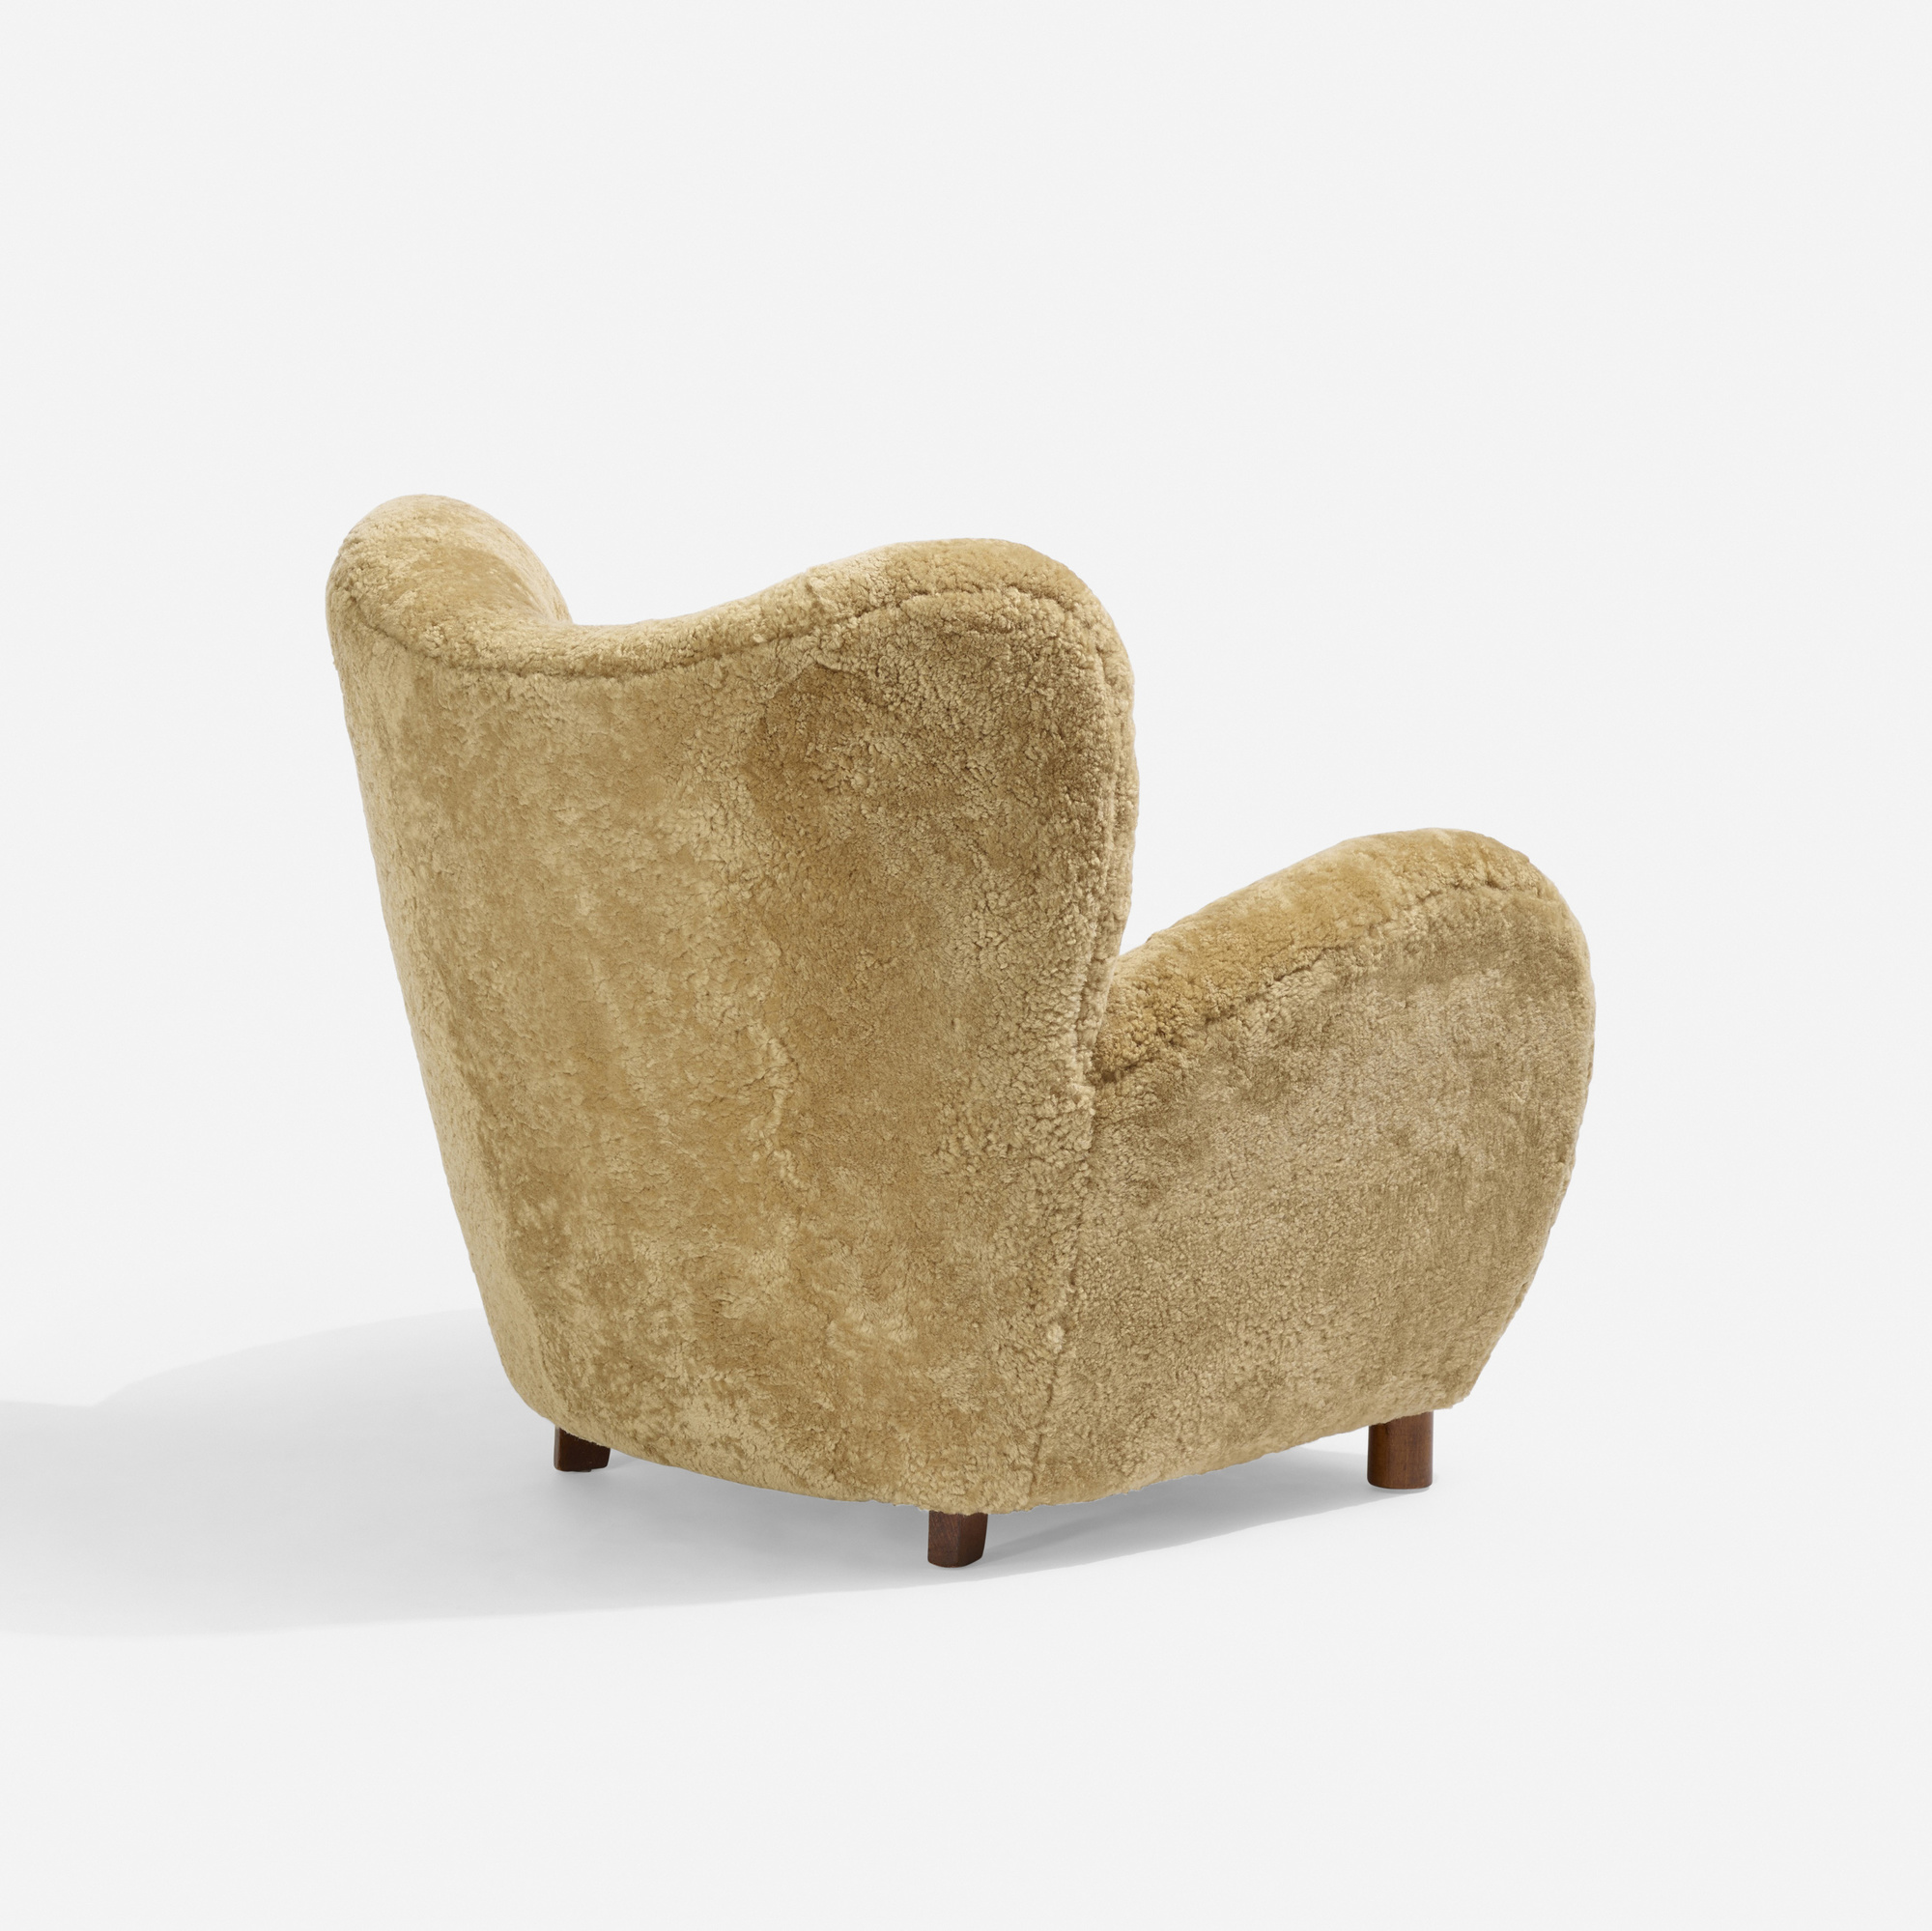 160: Flemming Lassen, attribution / lounge chair (3 of 3)